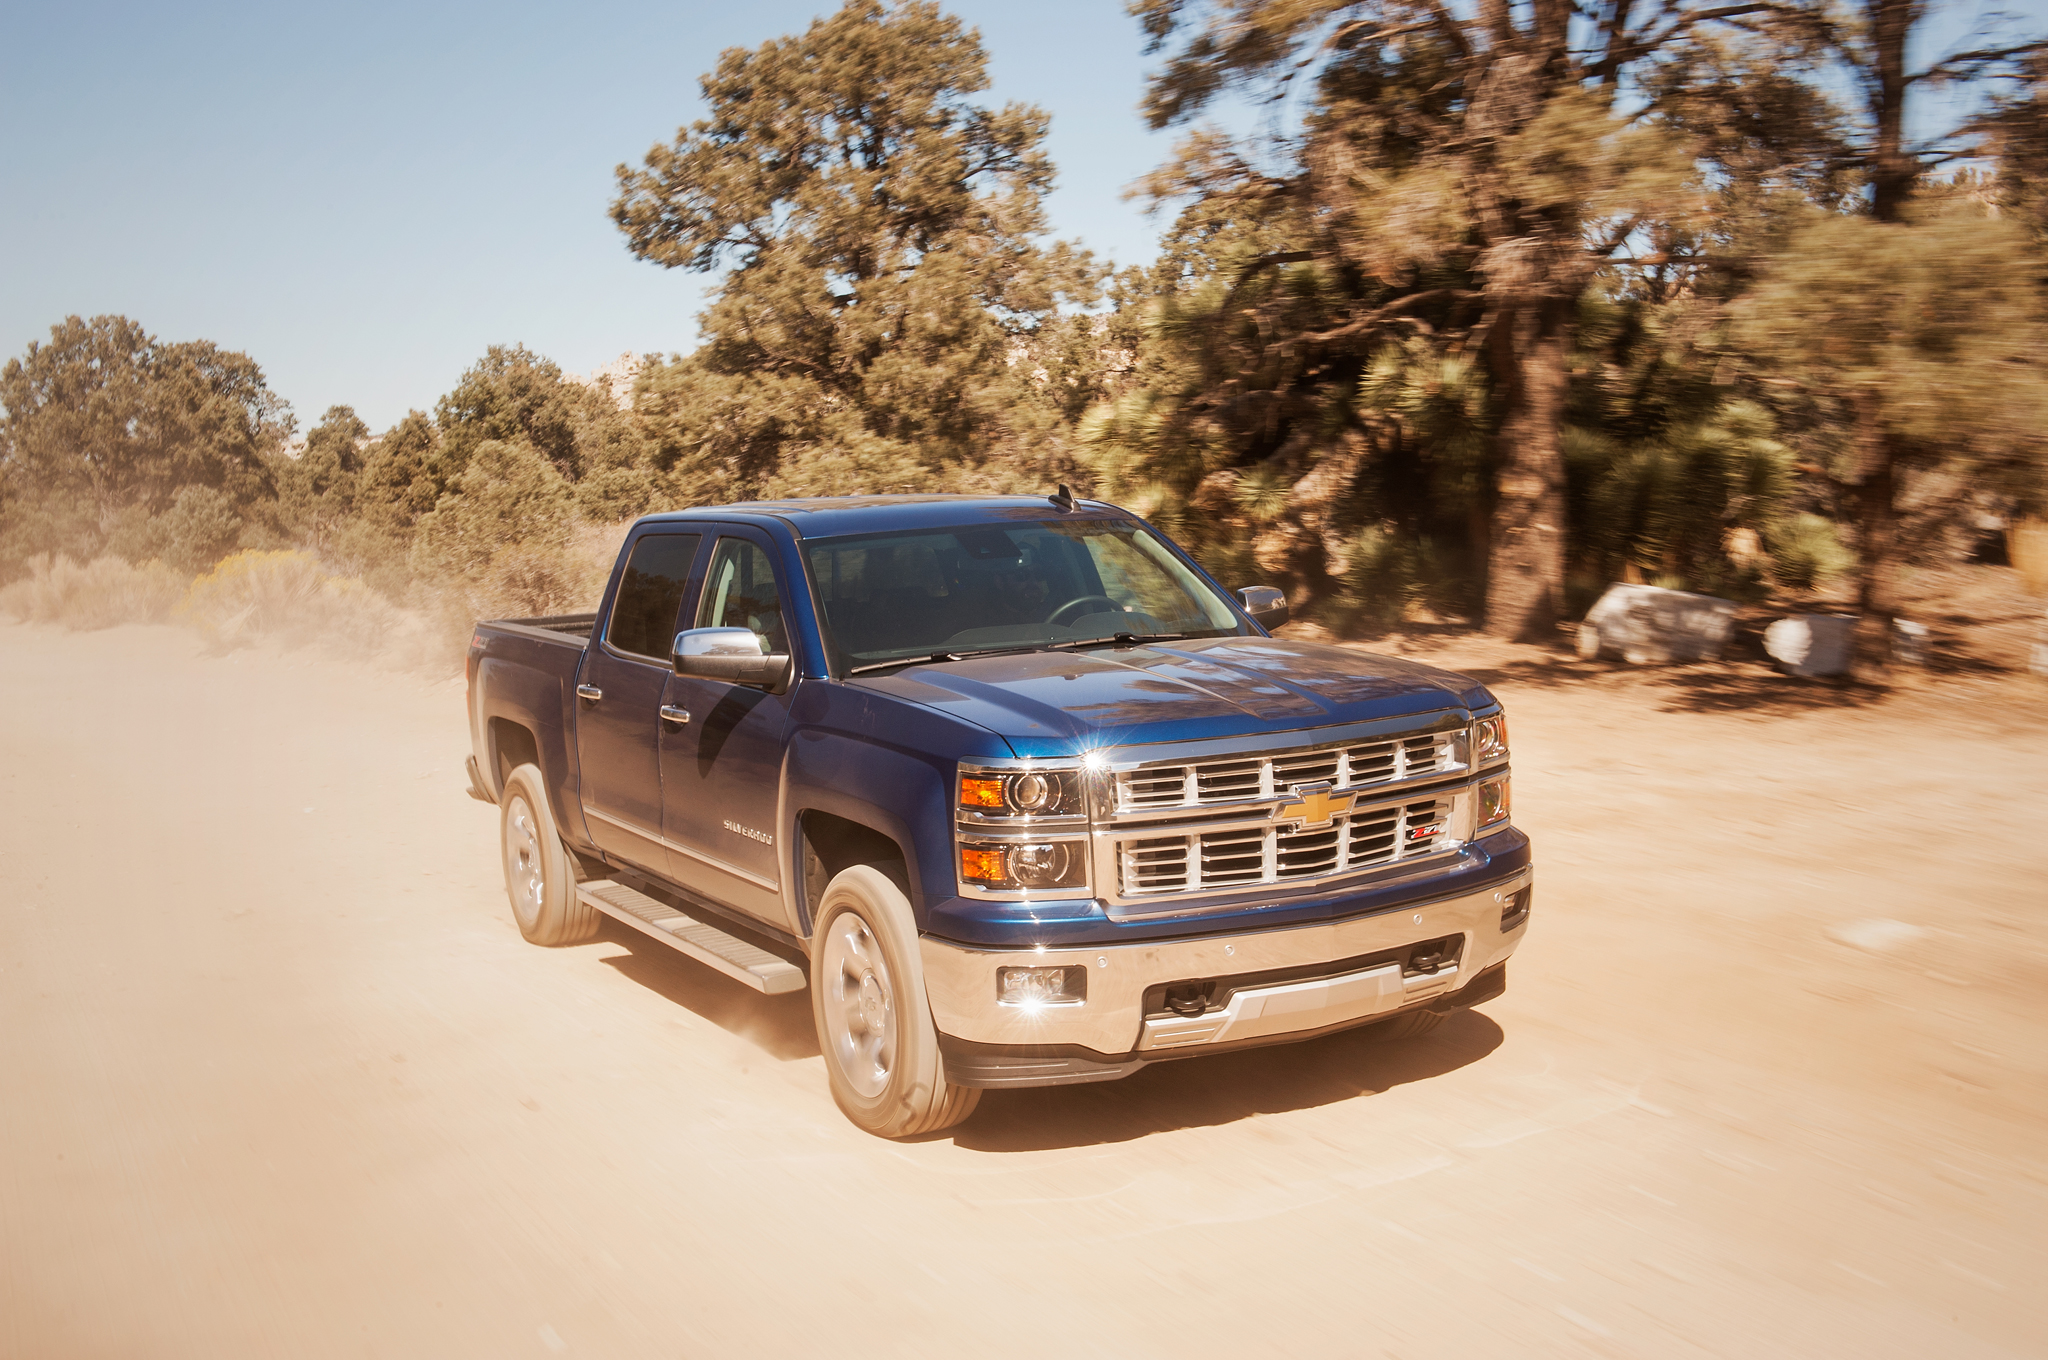 How much does a 2015 chevy silverado weigh